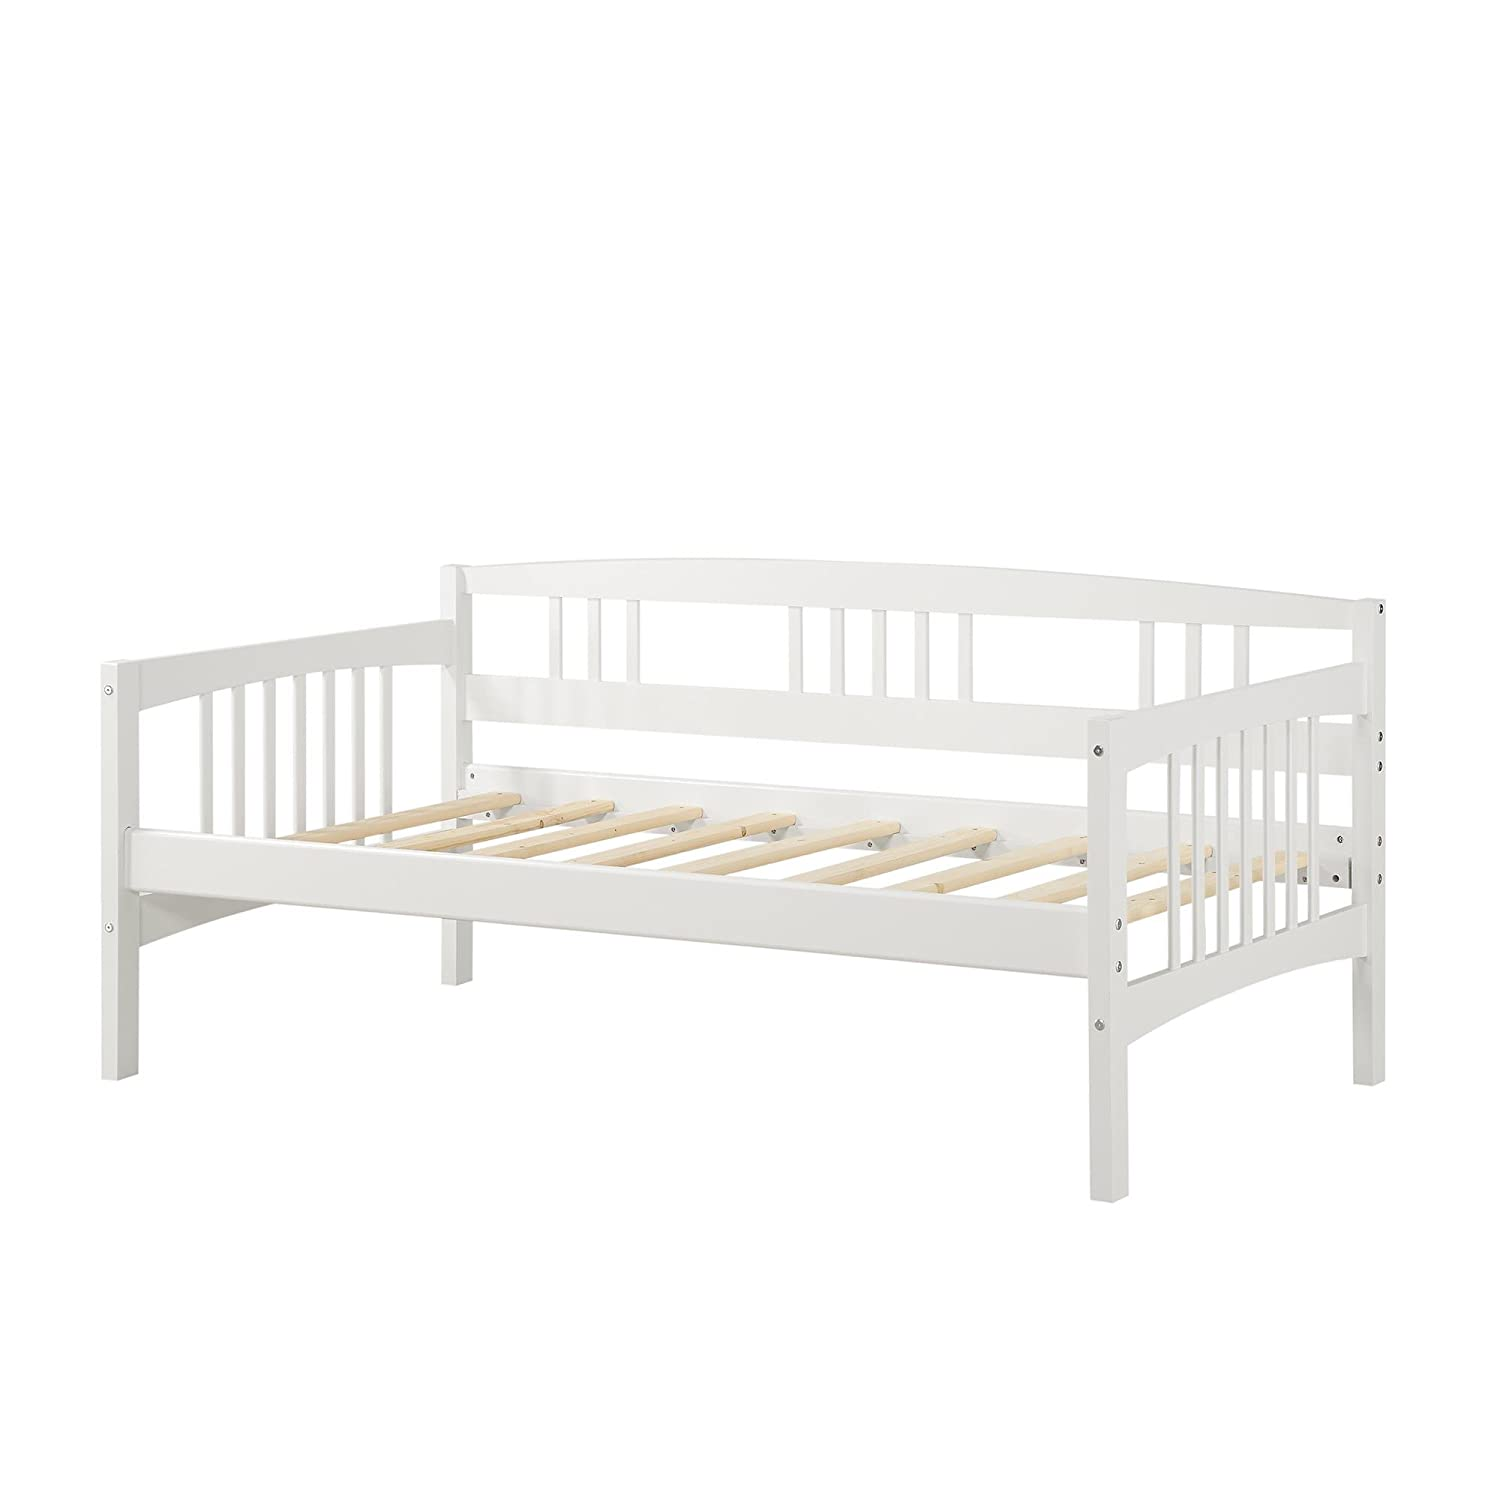 Dorel Living Kayden Daybed Solid Wood, Twin, White